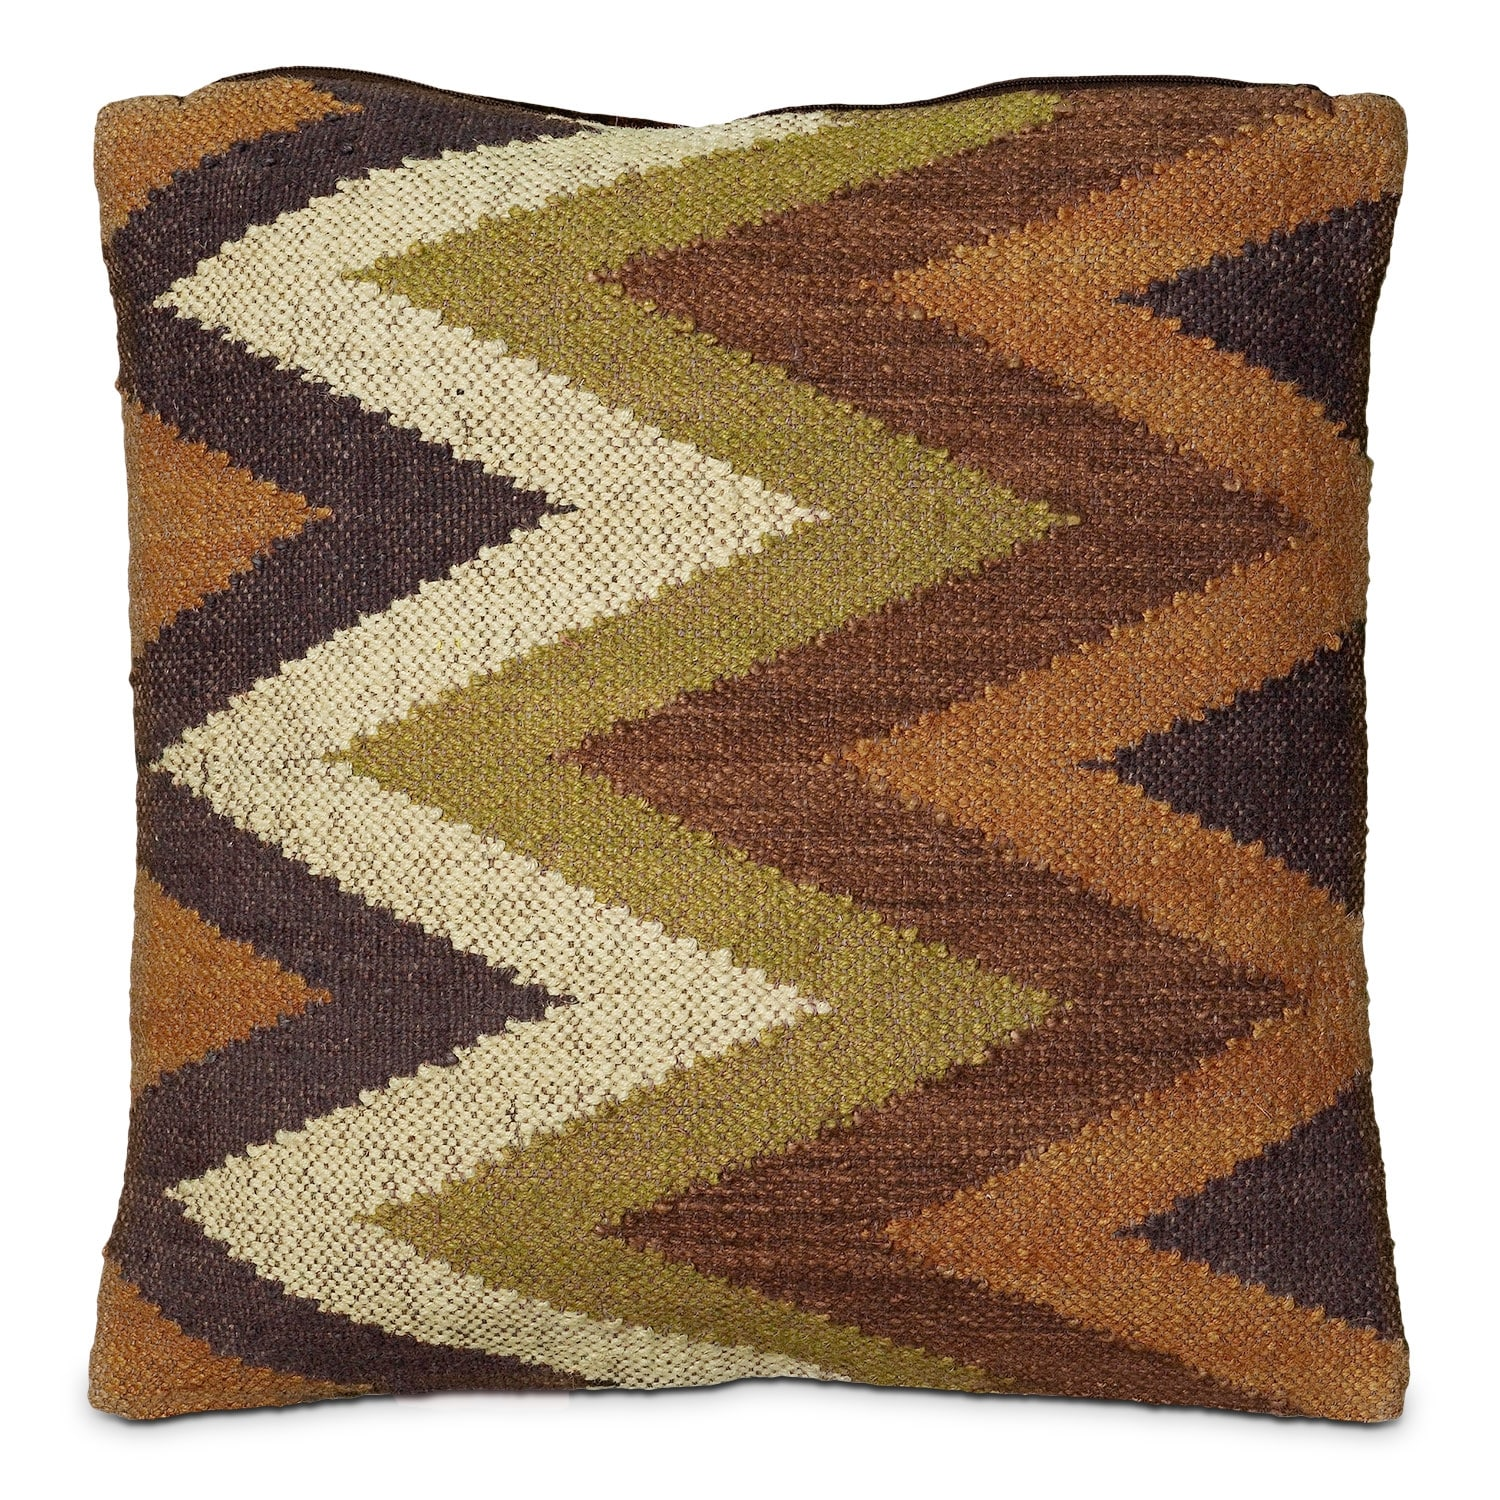 Rosetta Decorative Pillow